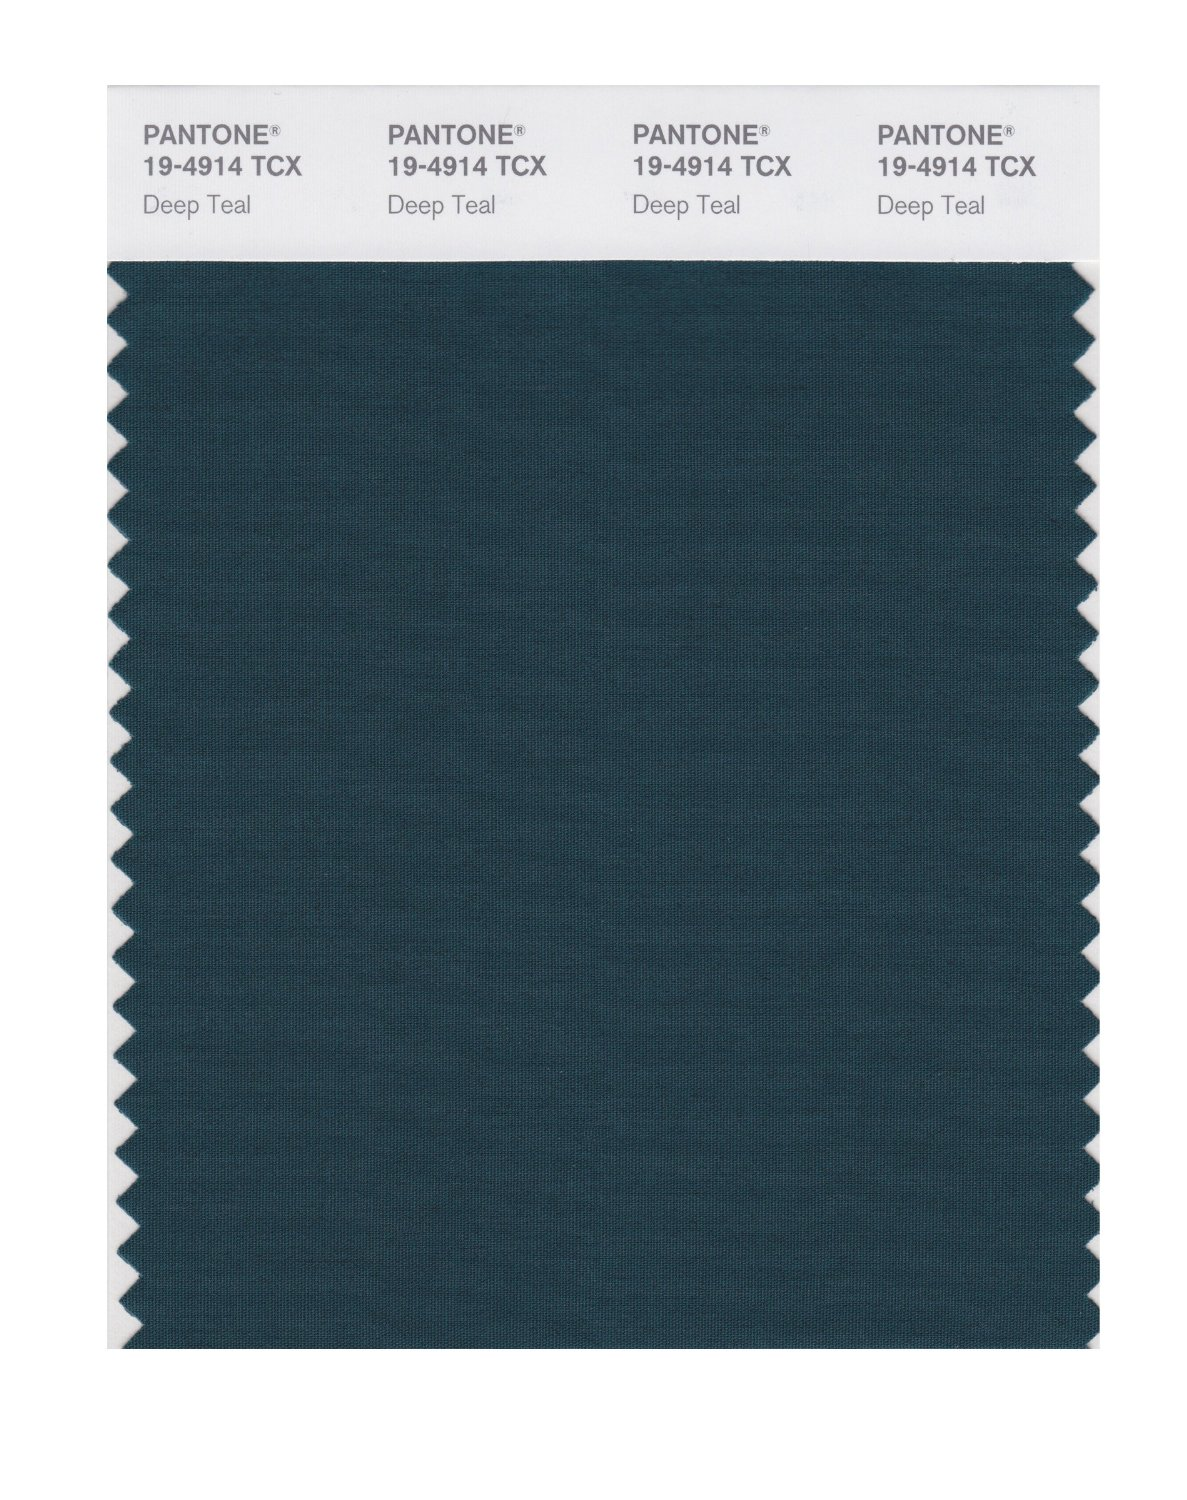 Pantone Smart Swatch 19-4914 Deep Teal